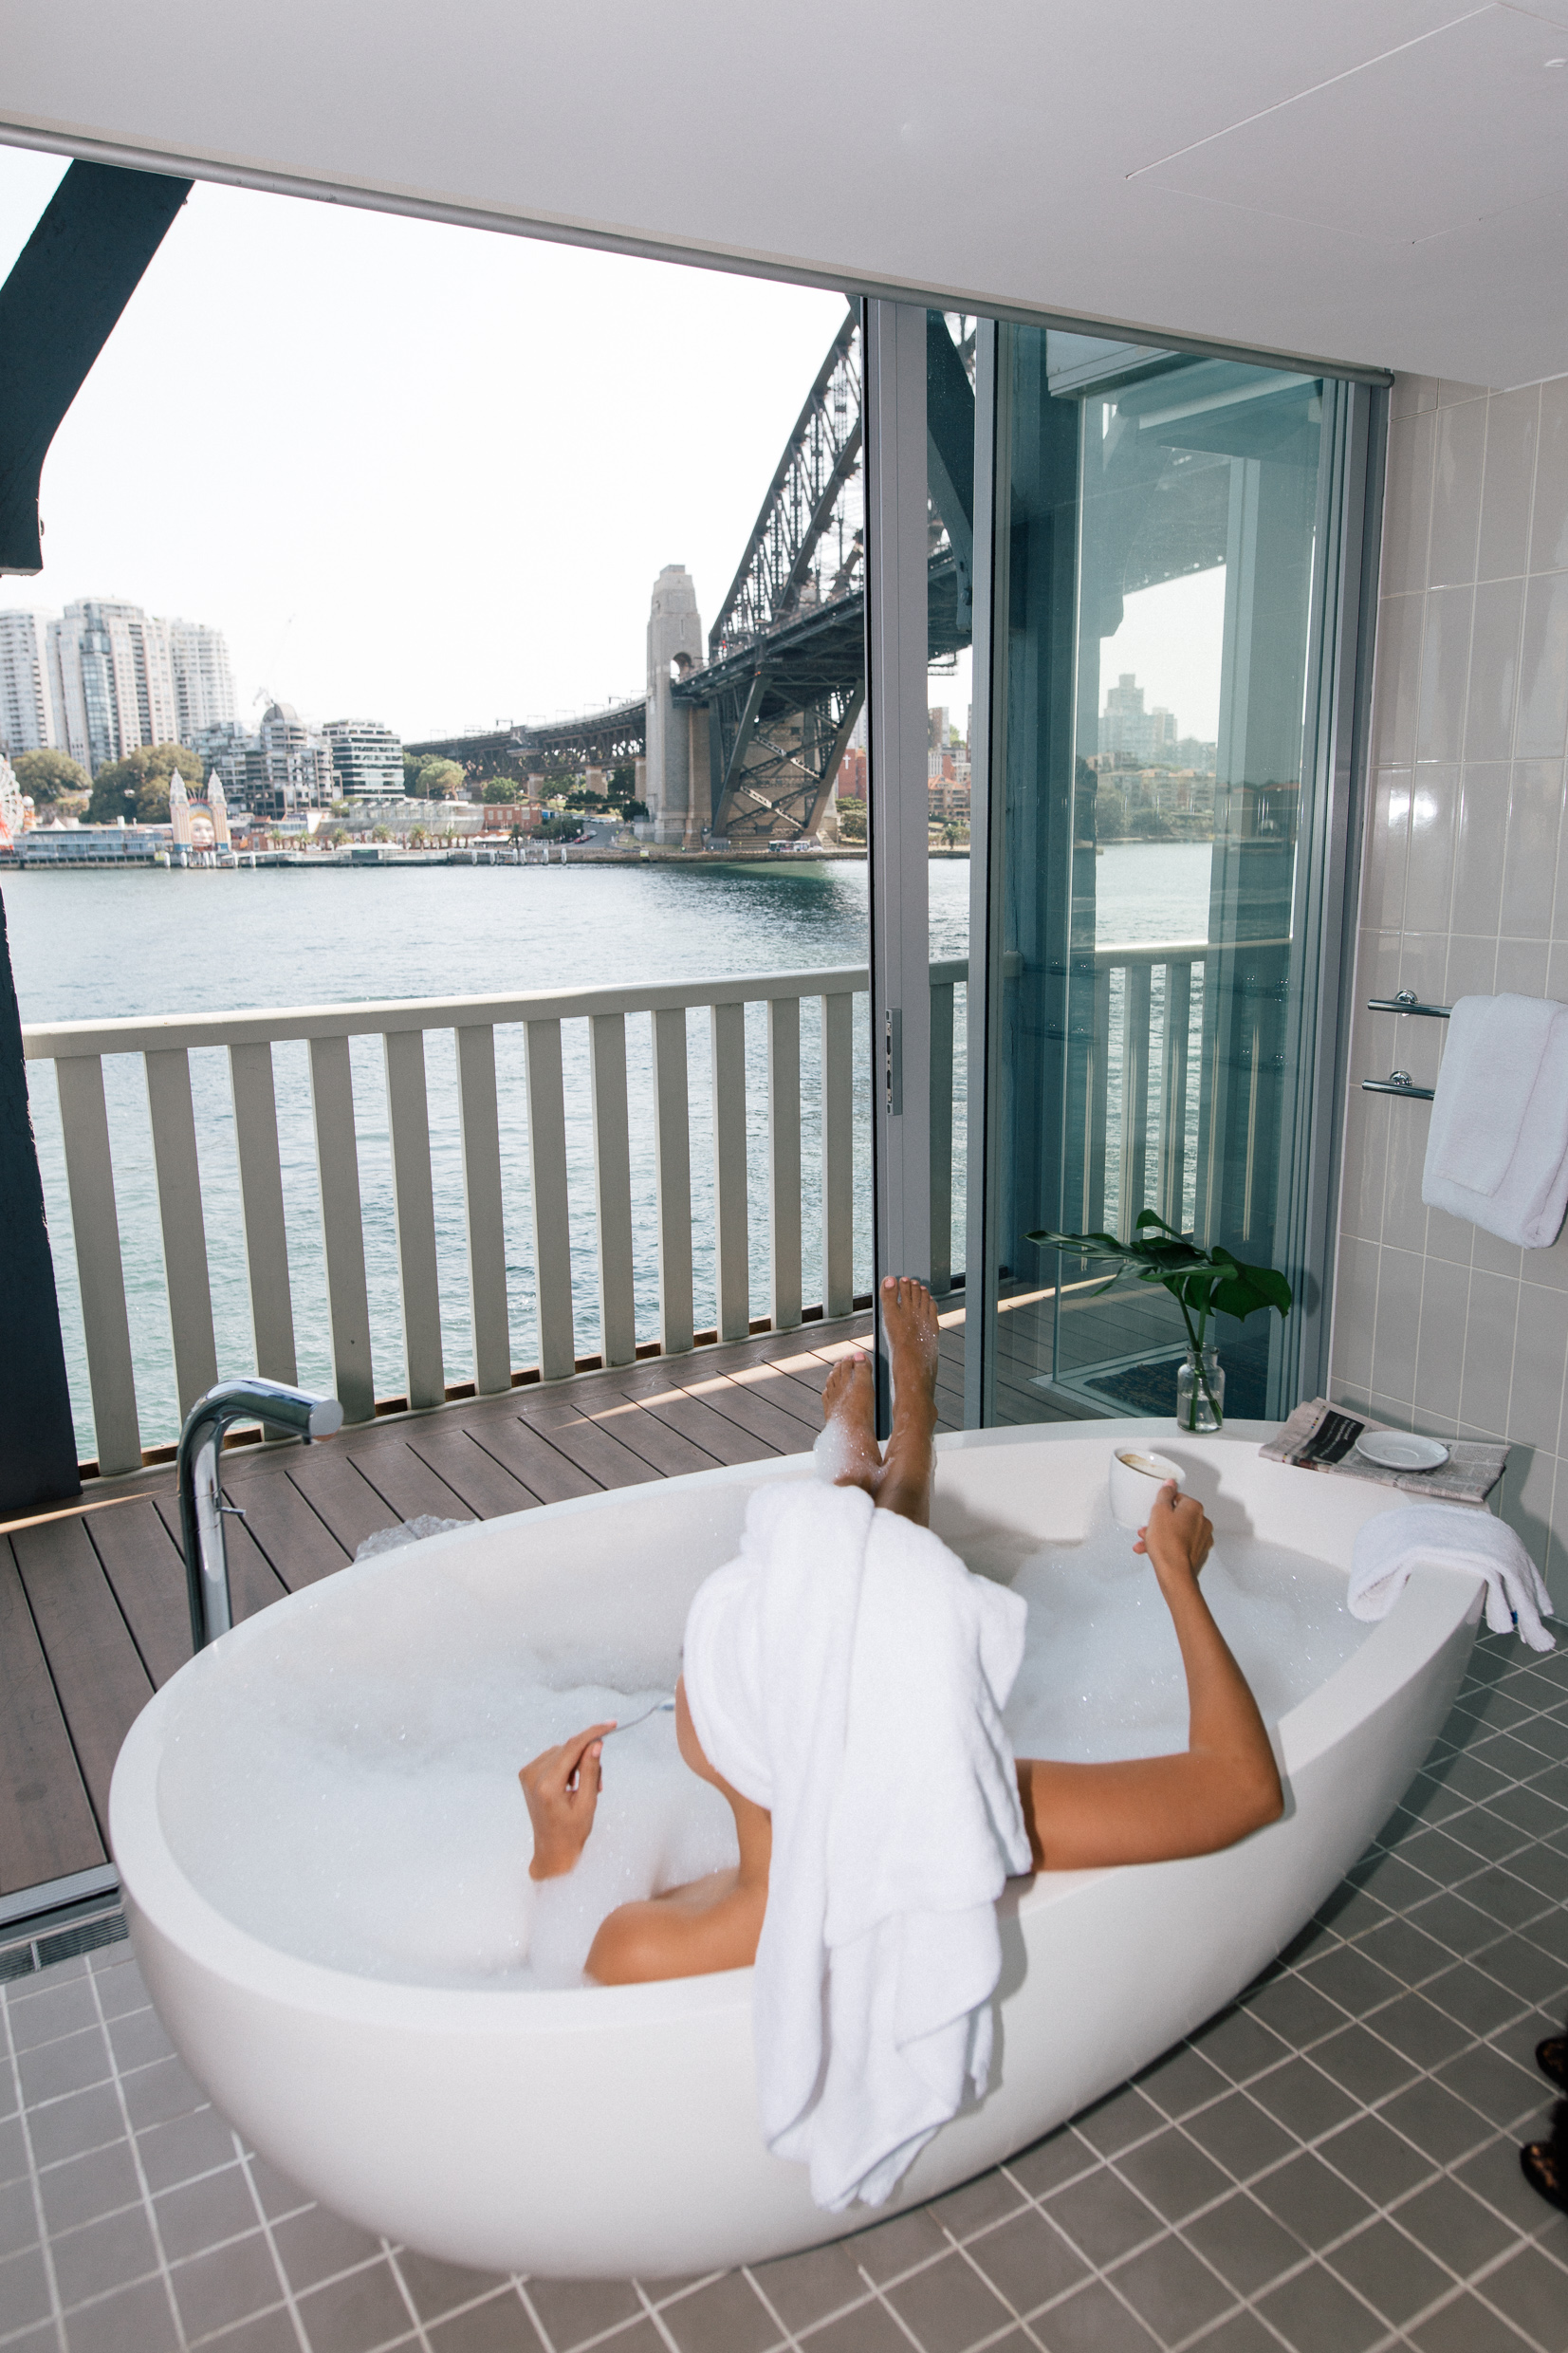 Pier One Hotel Admiral Suite Sydney Harbour Bridge bathtub